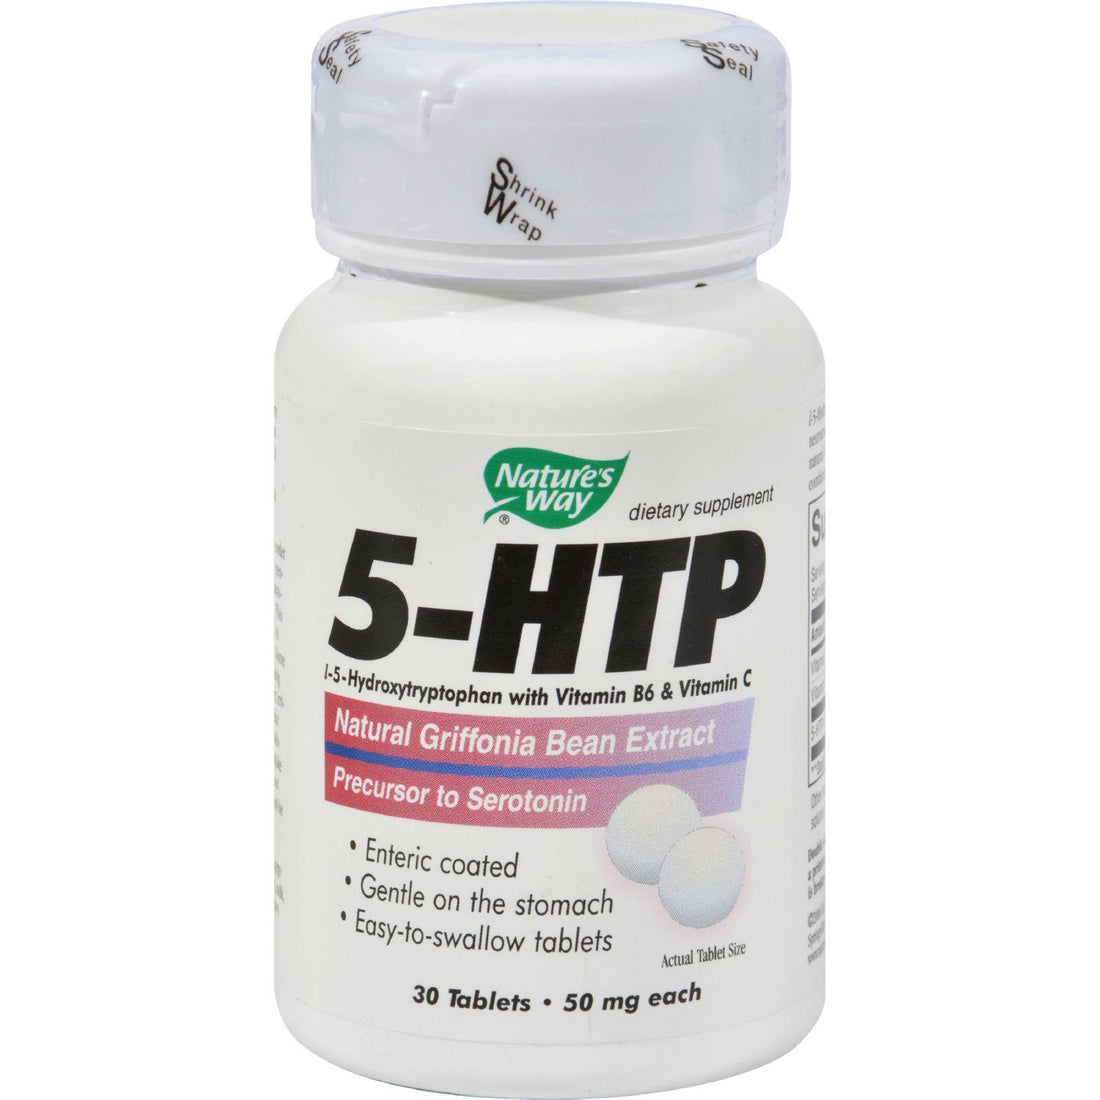 Mother Mantis: Nature's Way 5-htp - 30 Tablets Nature's Way